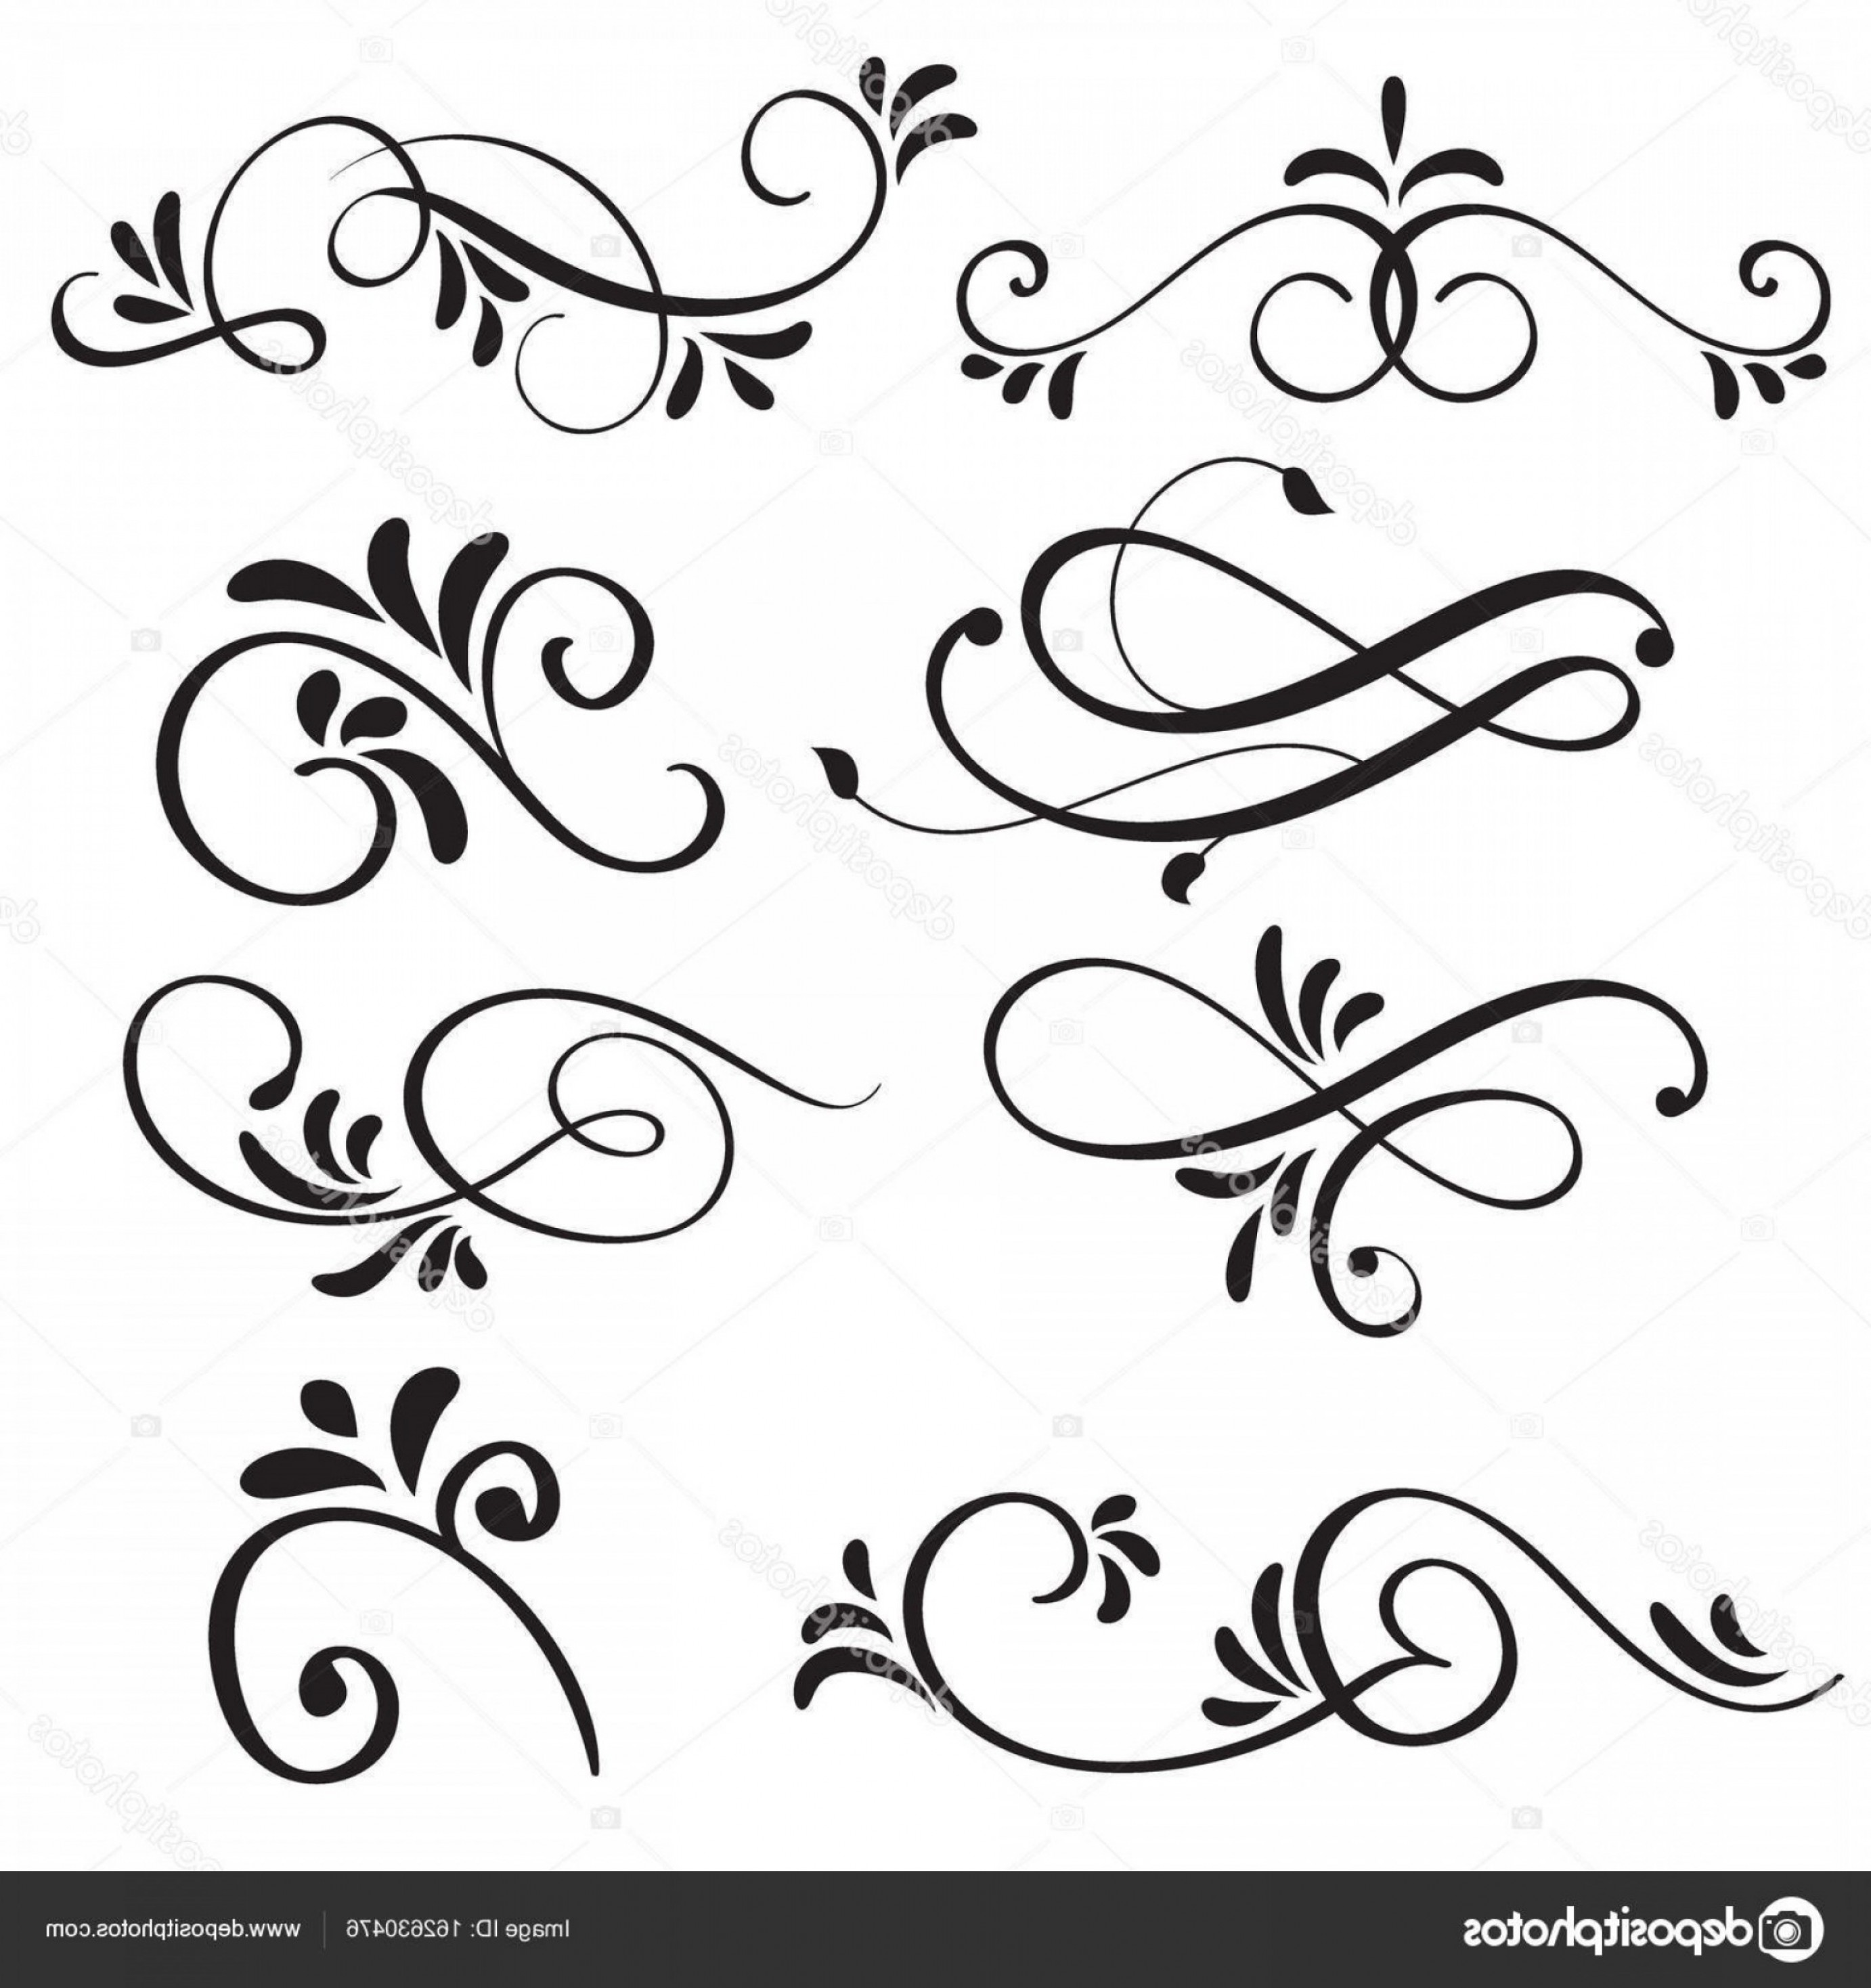 Florid Vector Simple: Stock Illustration Art Calligraphy Flourish Of Vintage